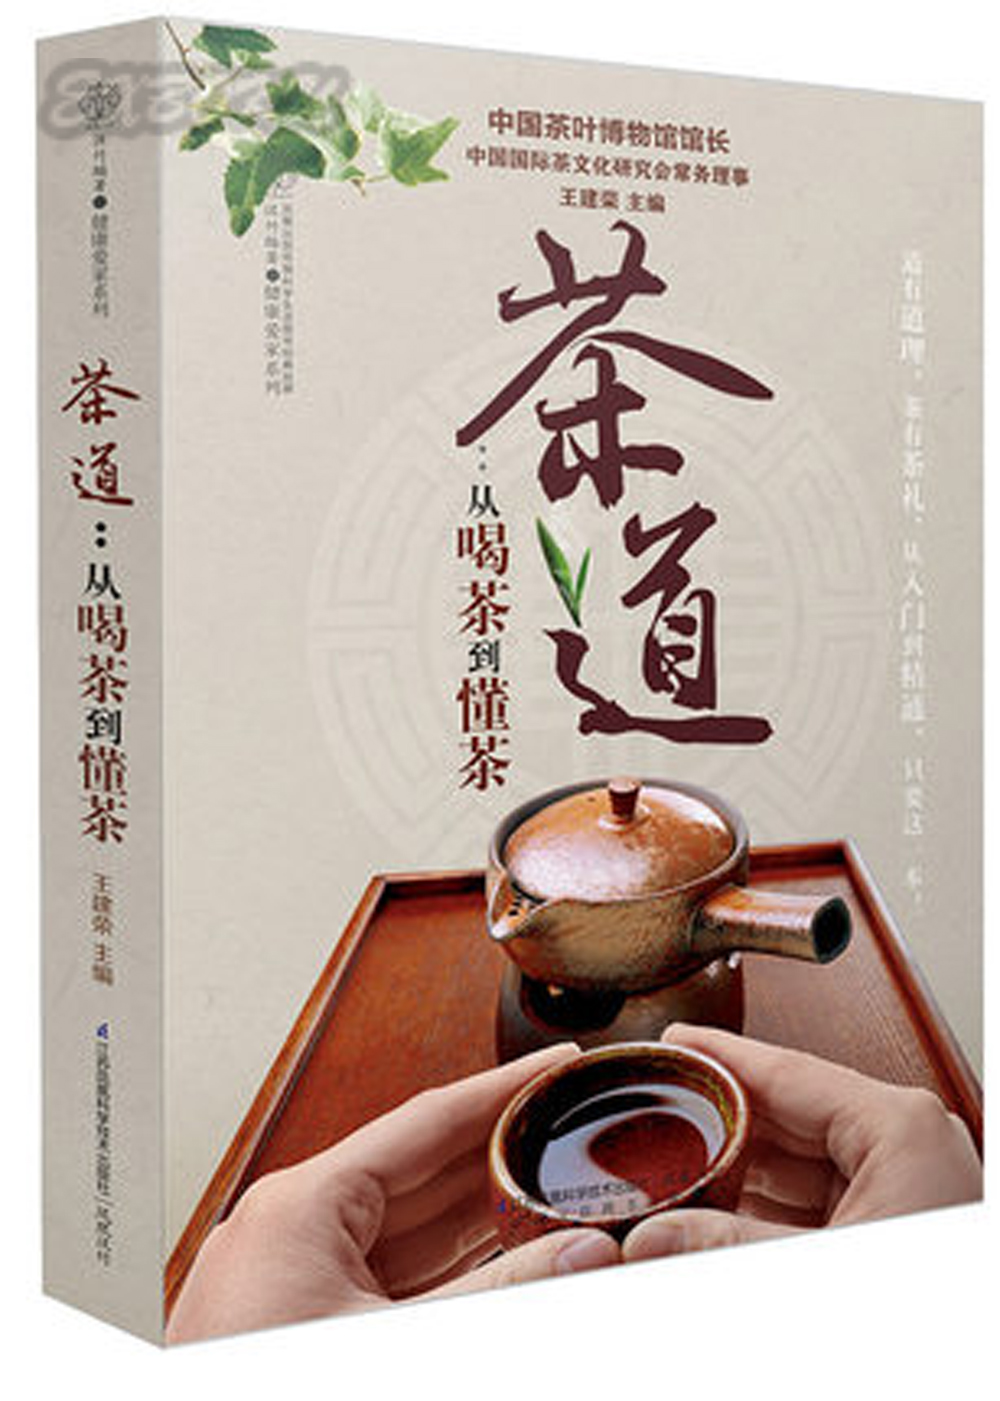 Tea ceremony- tea from drinking tea to understand (more than 600 Figure experts teach you to read the tea) green/red tea c hc017 green food lapsang souchong superior oolong tea gift package органический для снятия веса lapsang souchong black tea